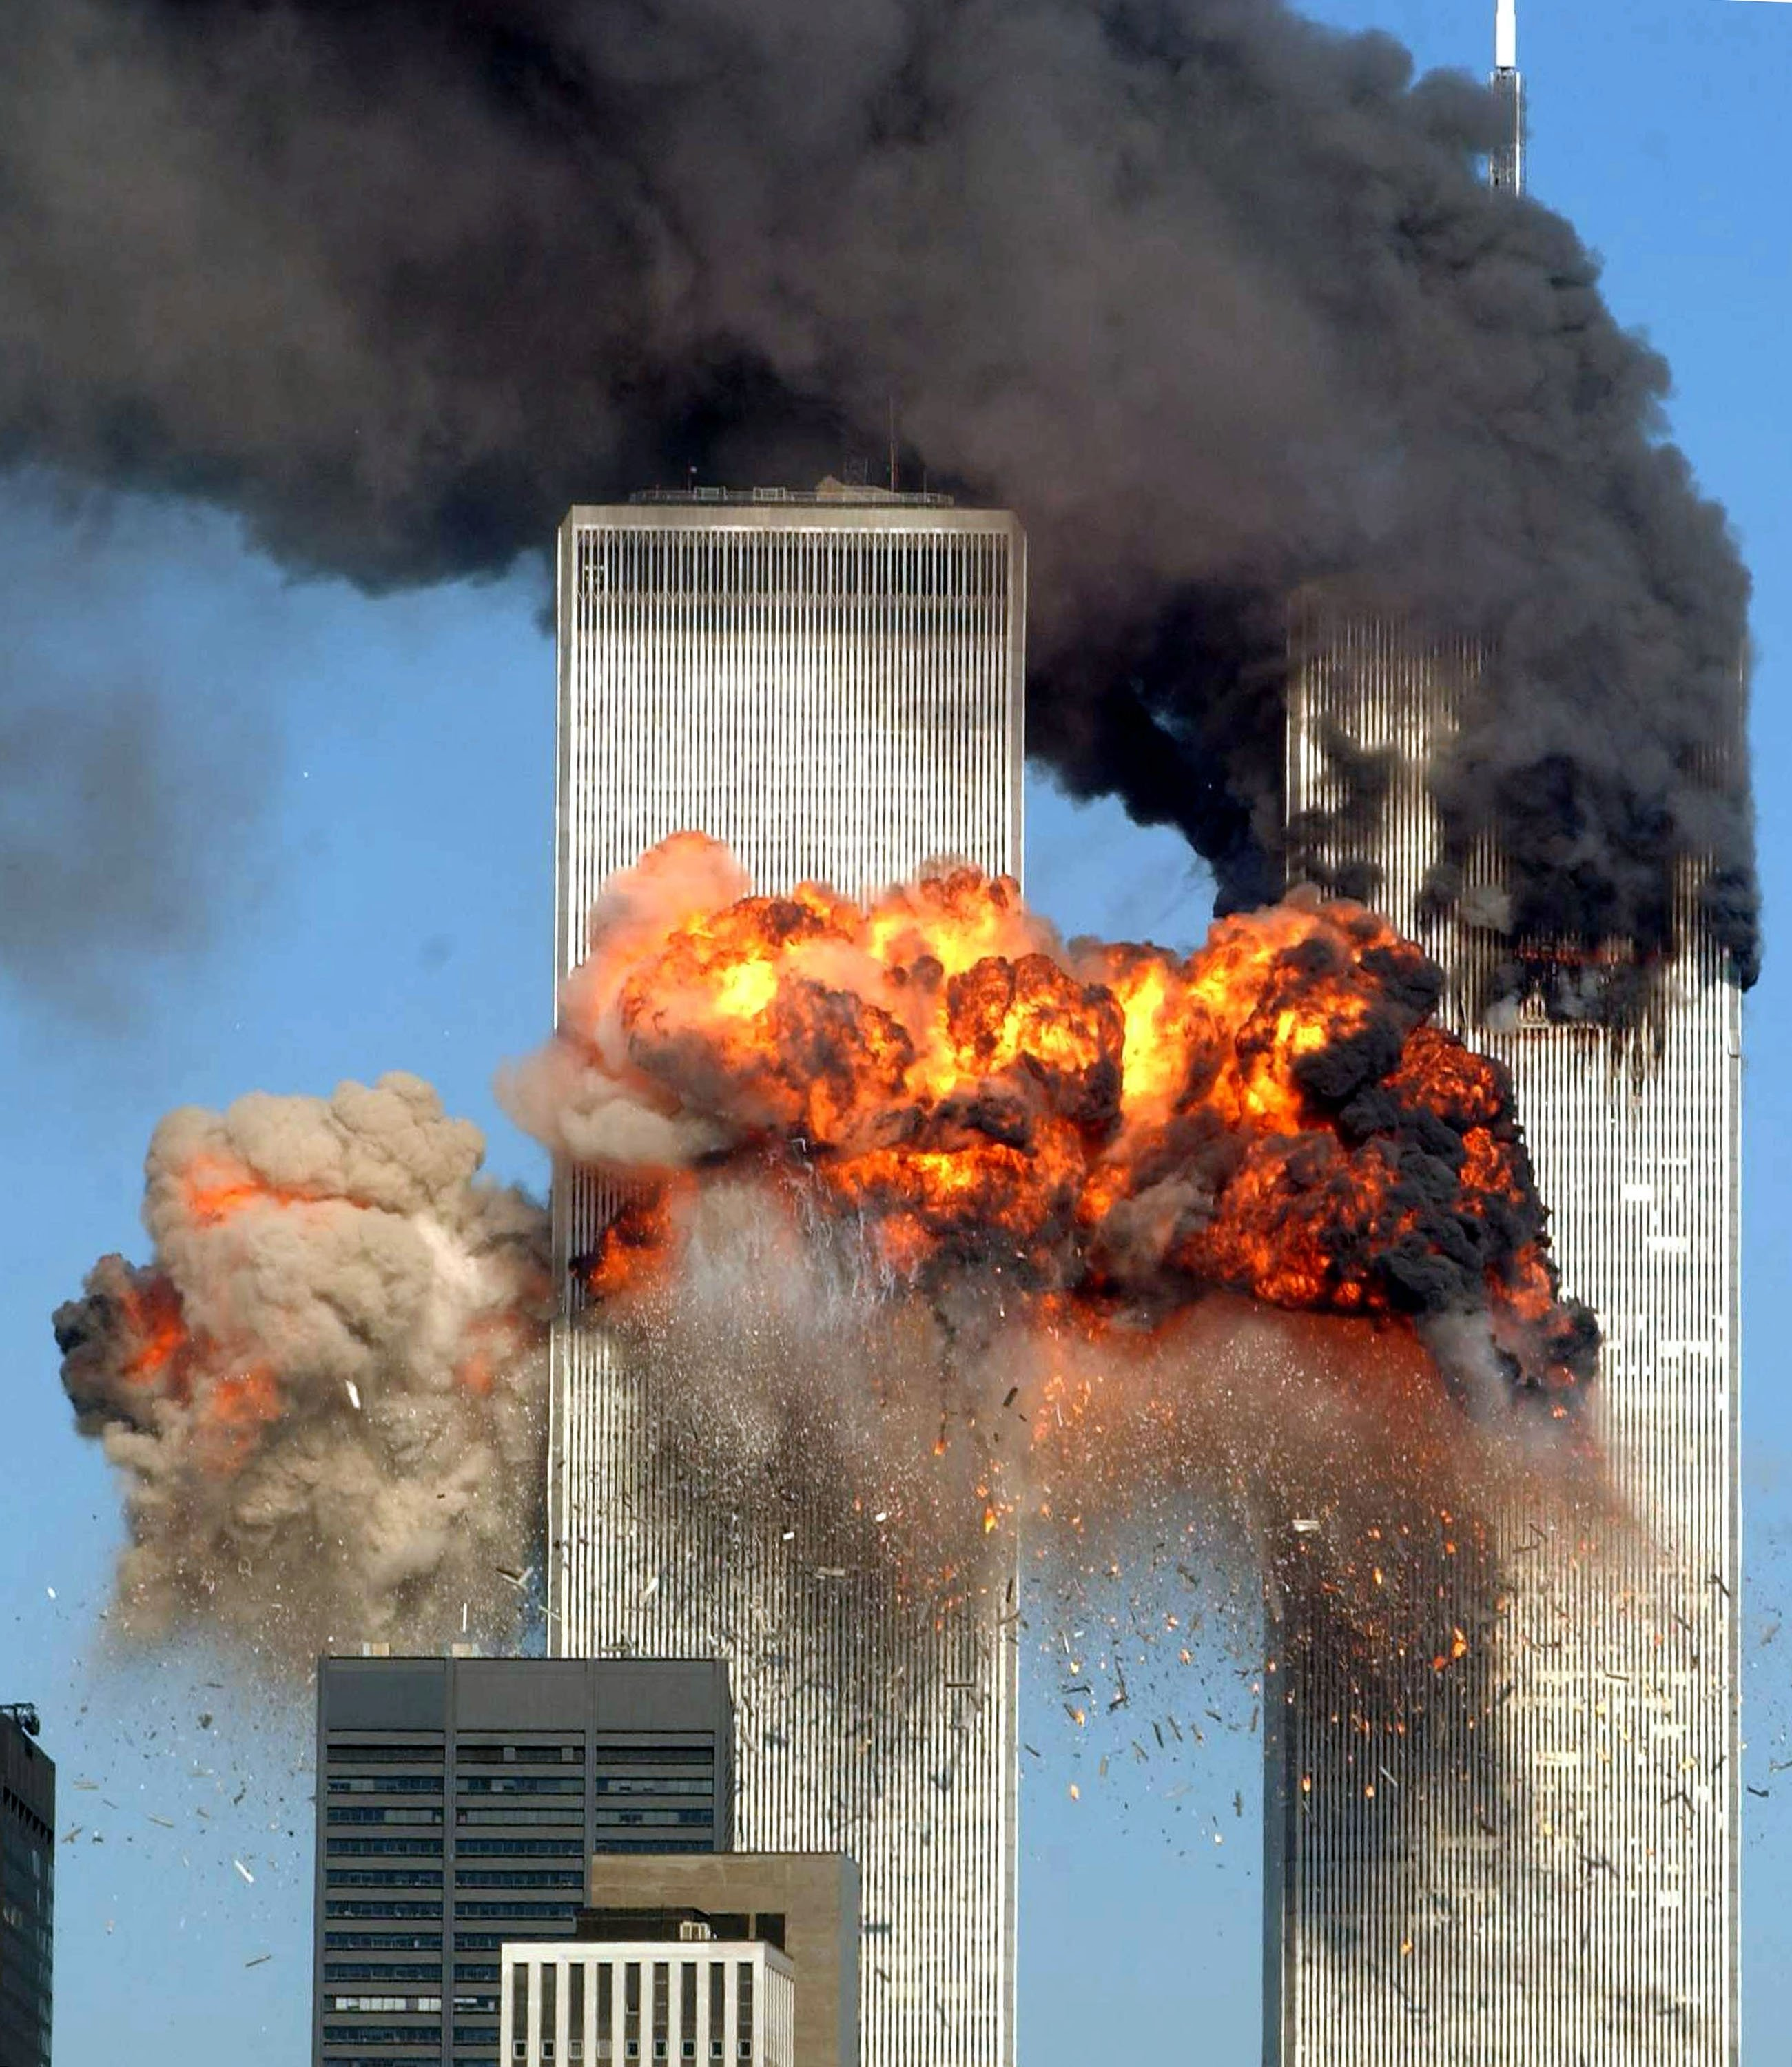 Hijacked by terrorists loyal to al-Qaida leader Osama bin Laden, the U.S. Flight 175 from Boston crashes into the south tower of the World Trade Center and explodes at 9:03 a.m., in New York City, U.S., Sept. 11, 2001. (Photo by Getty Images)